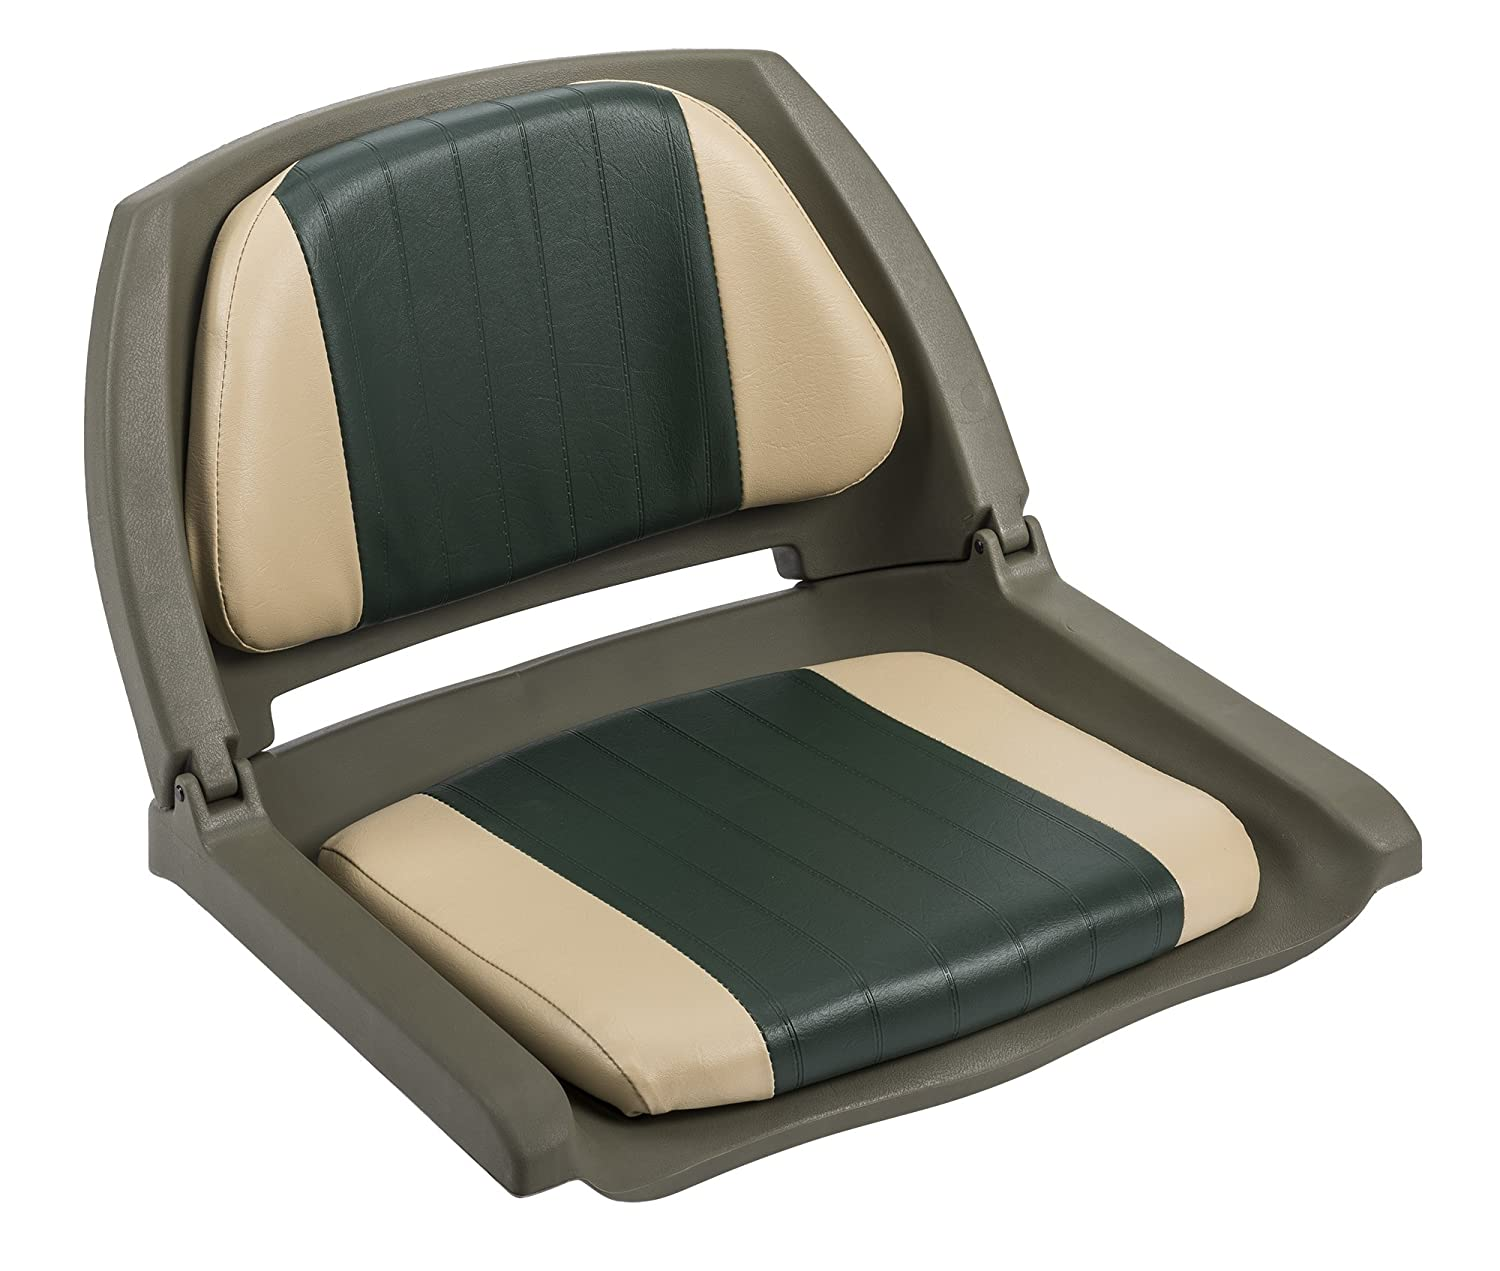 Wise 8WD139 Series Molded Boat seat